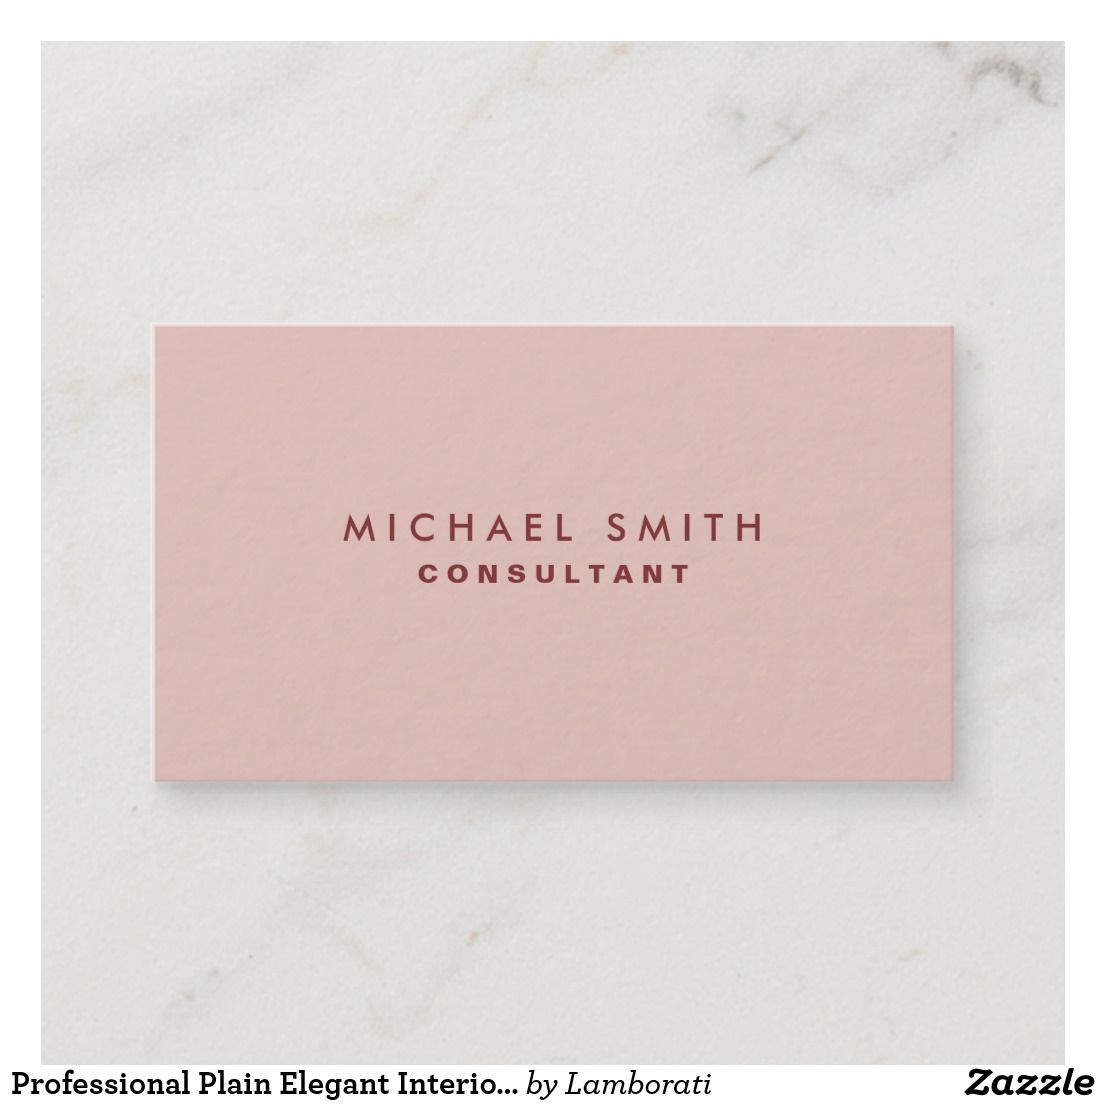 Professional plain elegant interior decorator pink business card also rh in pinterest